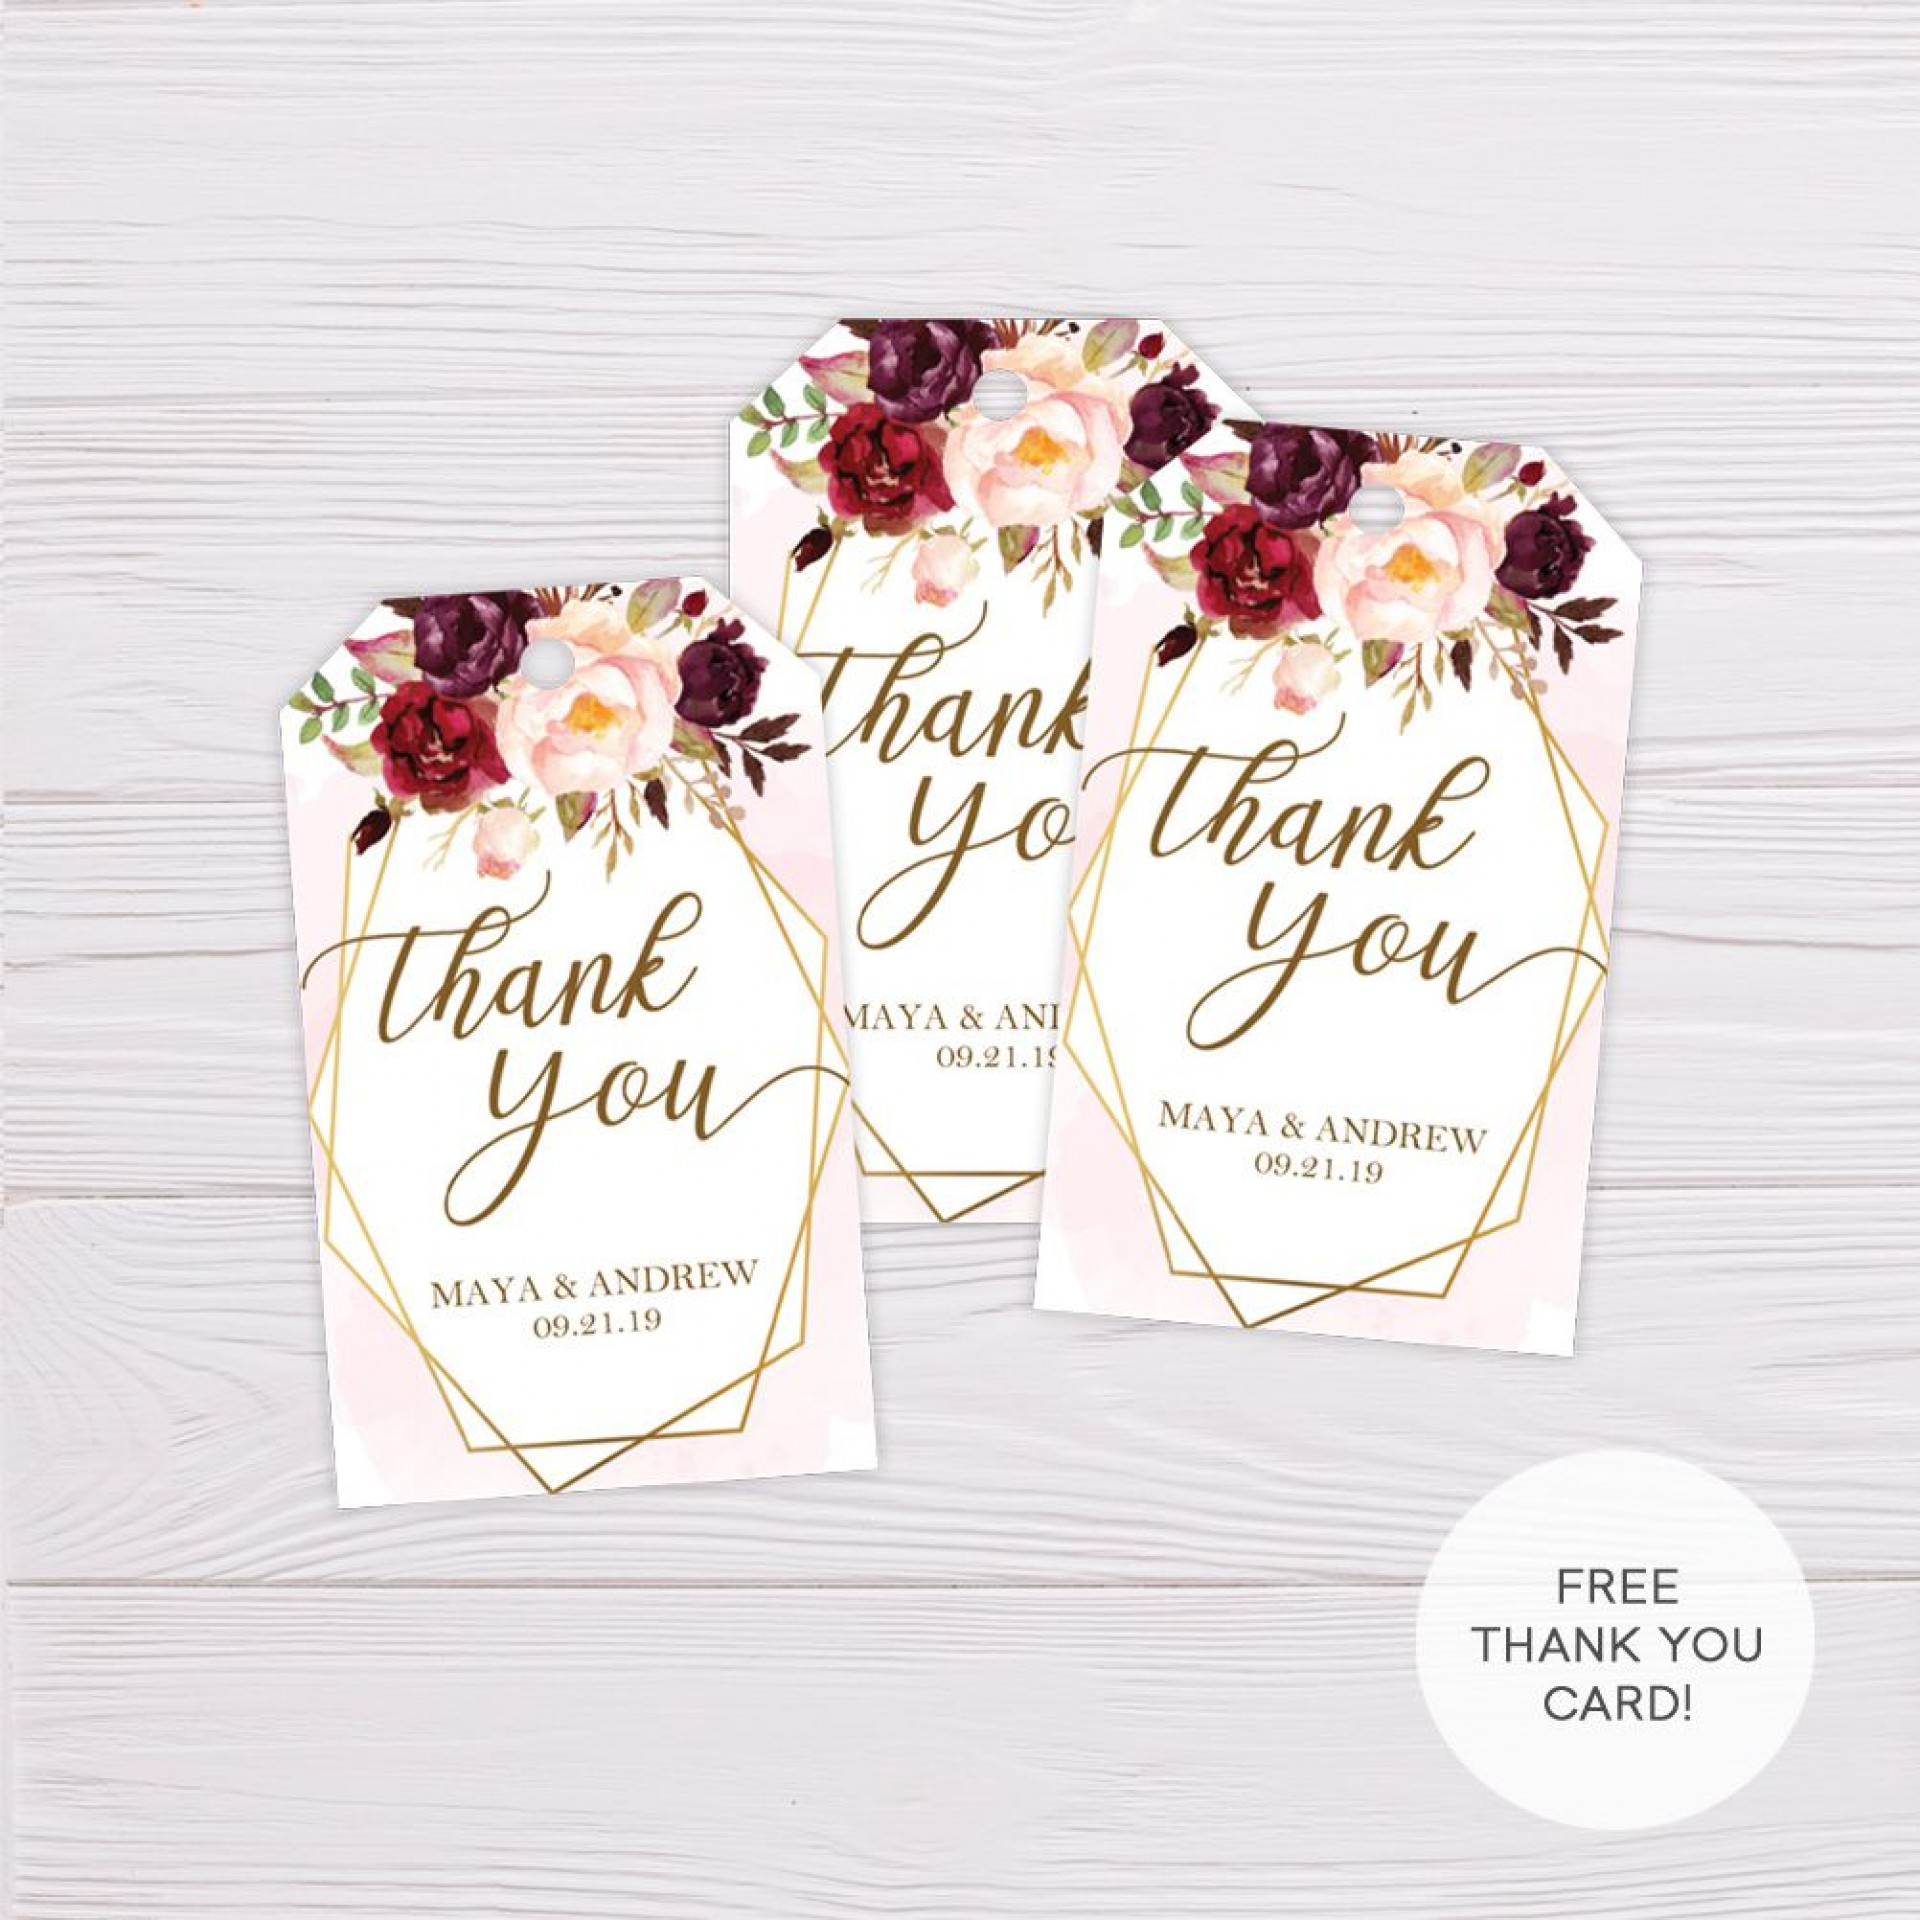 008 Surprising Wedding Favor Tag Template Picture  Templates Editable Free Party Printable1920